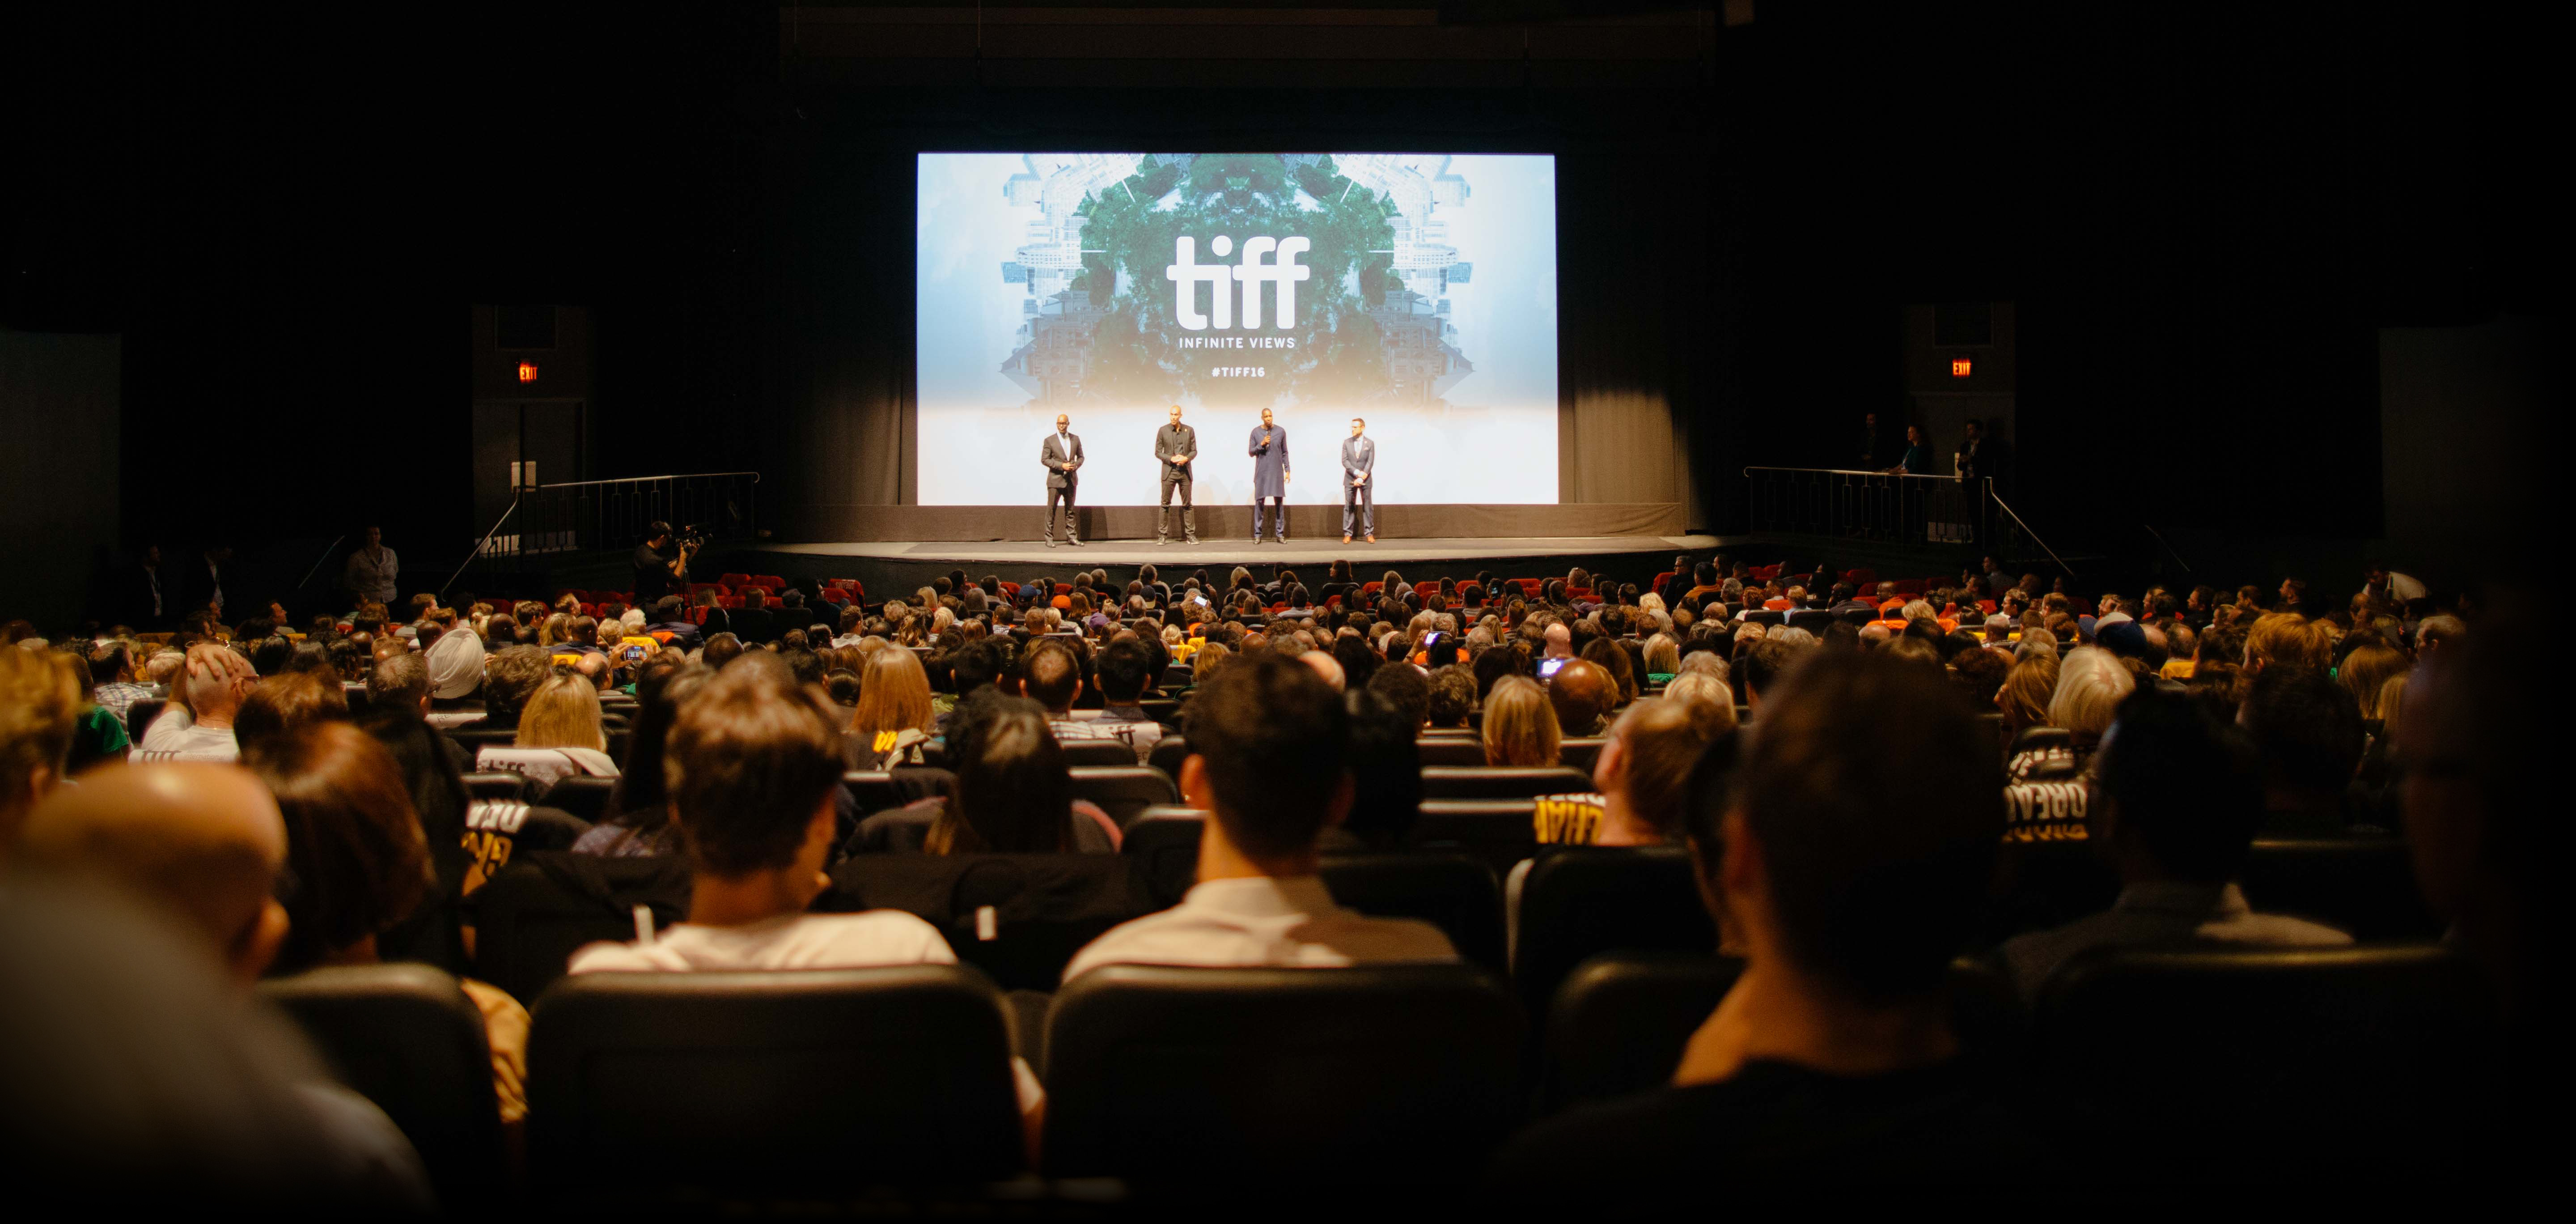 TIFF '16 In Cinema